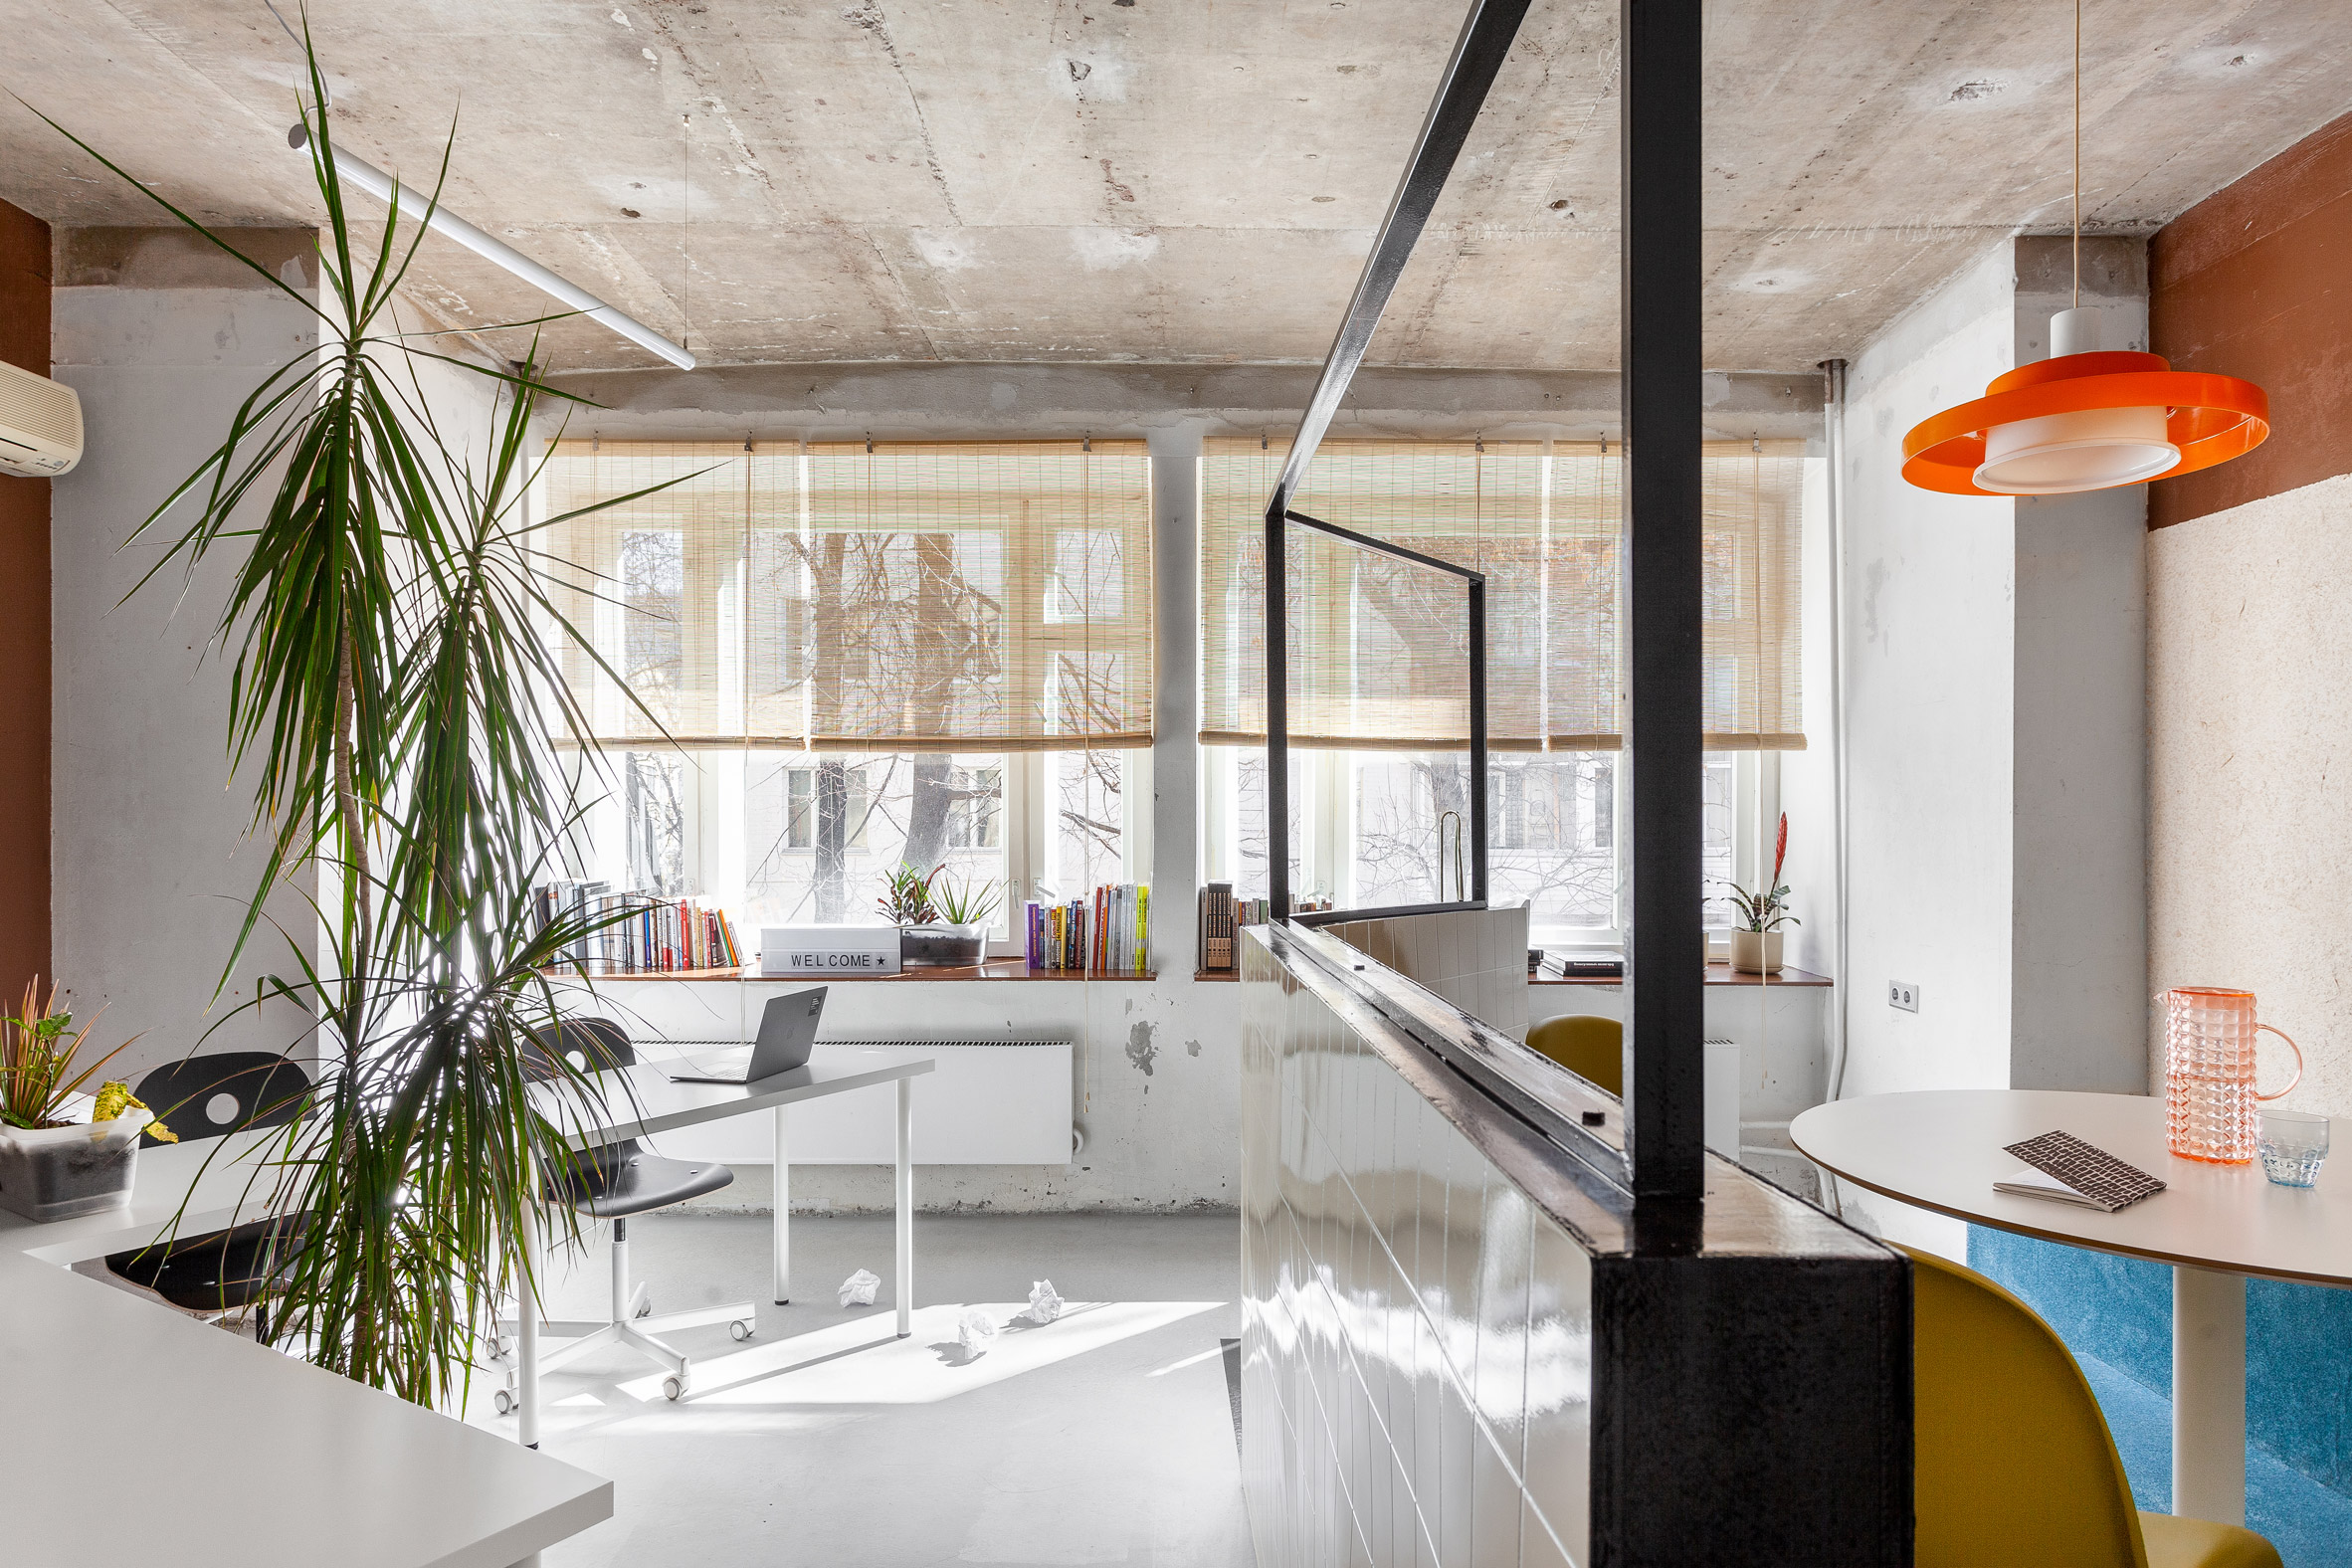 Rupor office designed by Dvekati